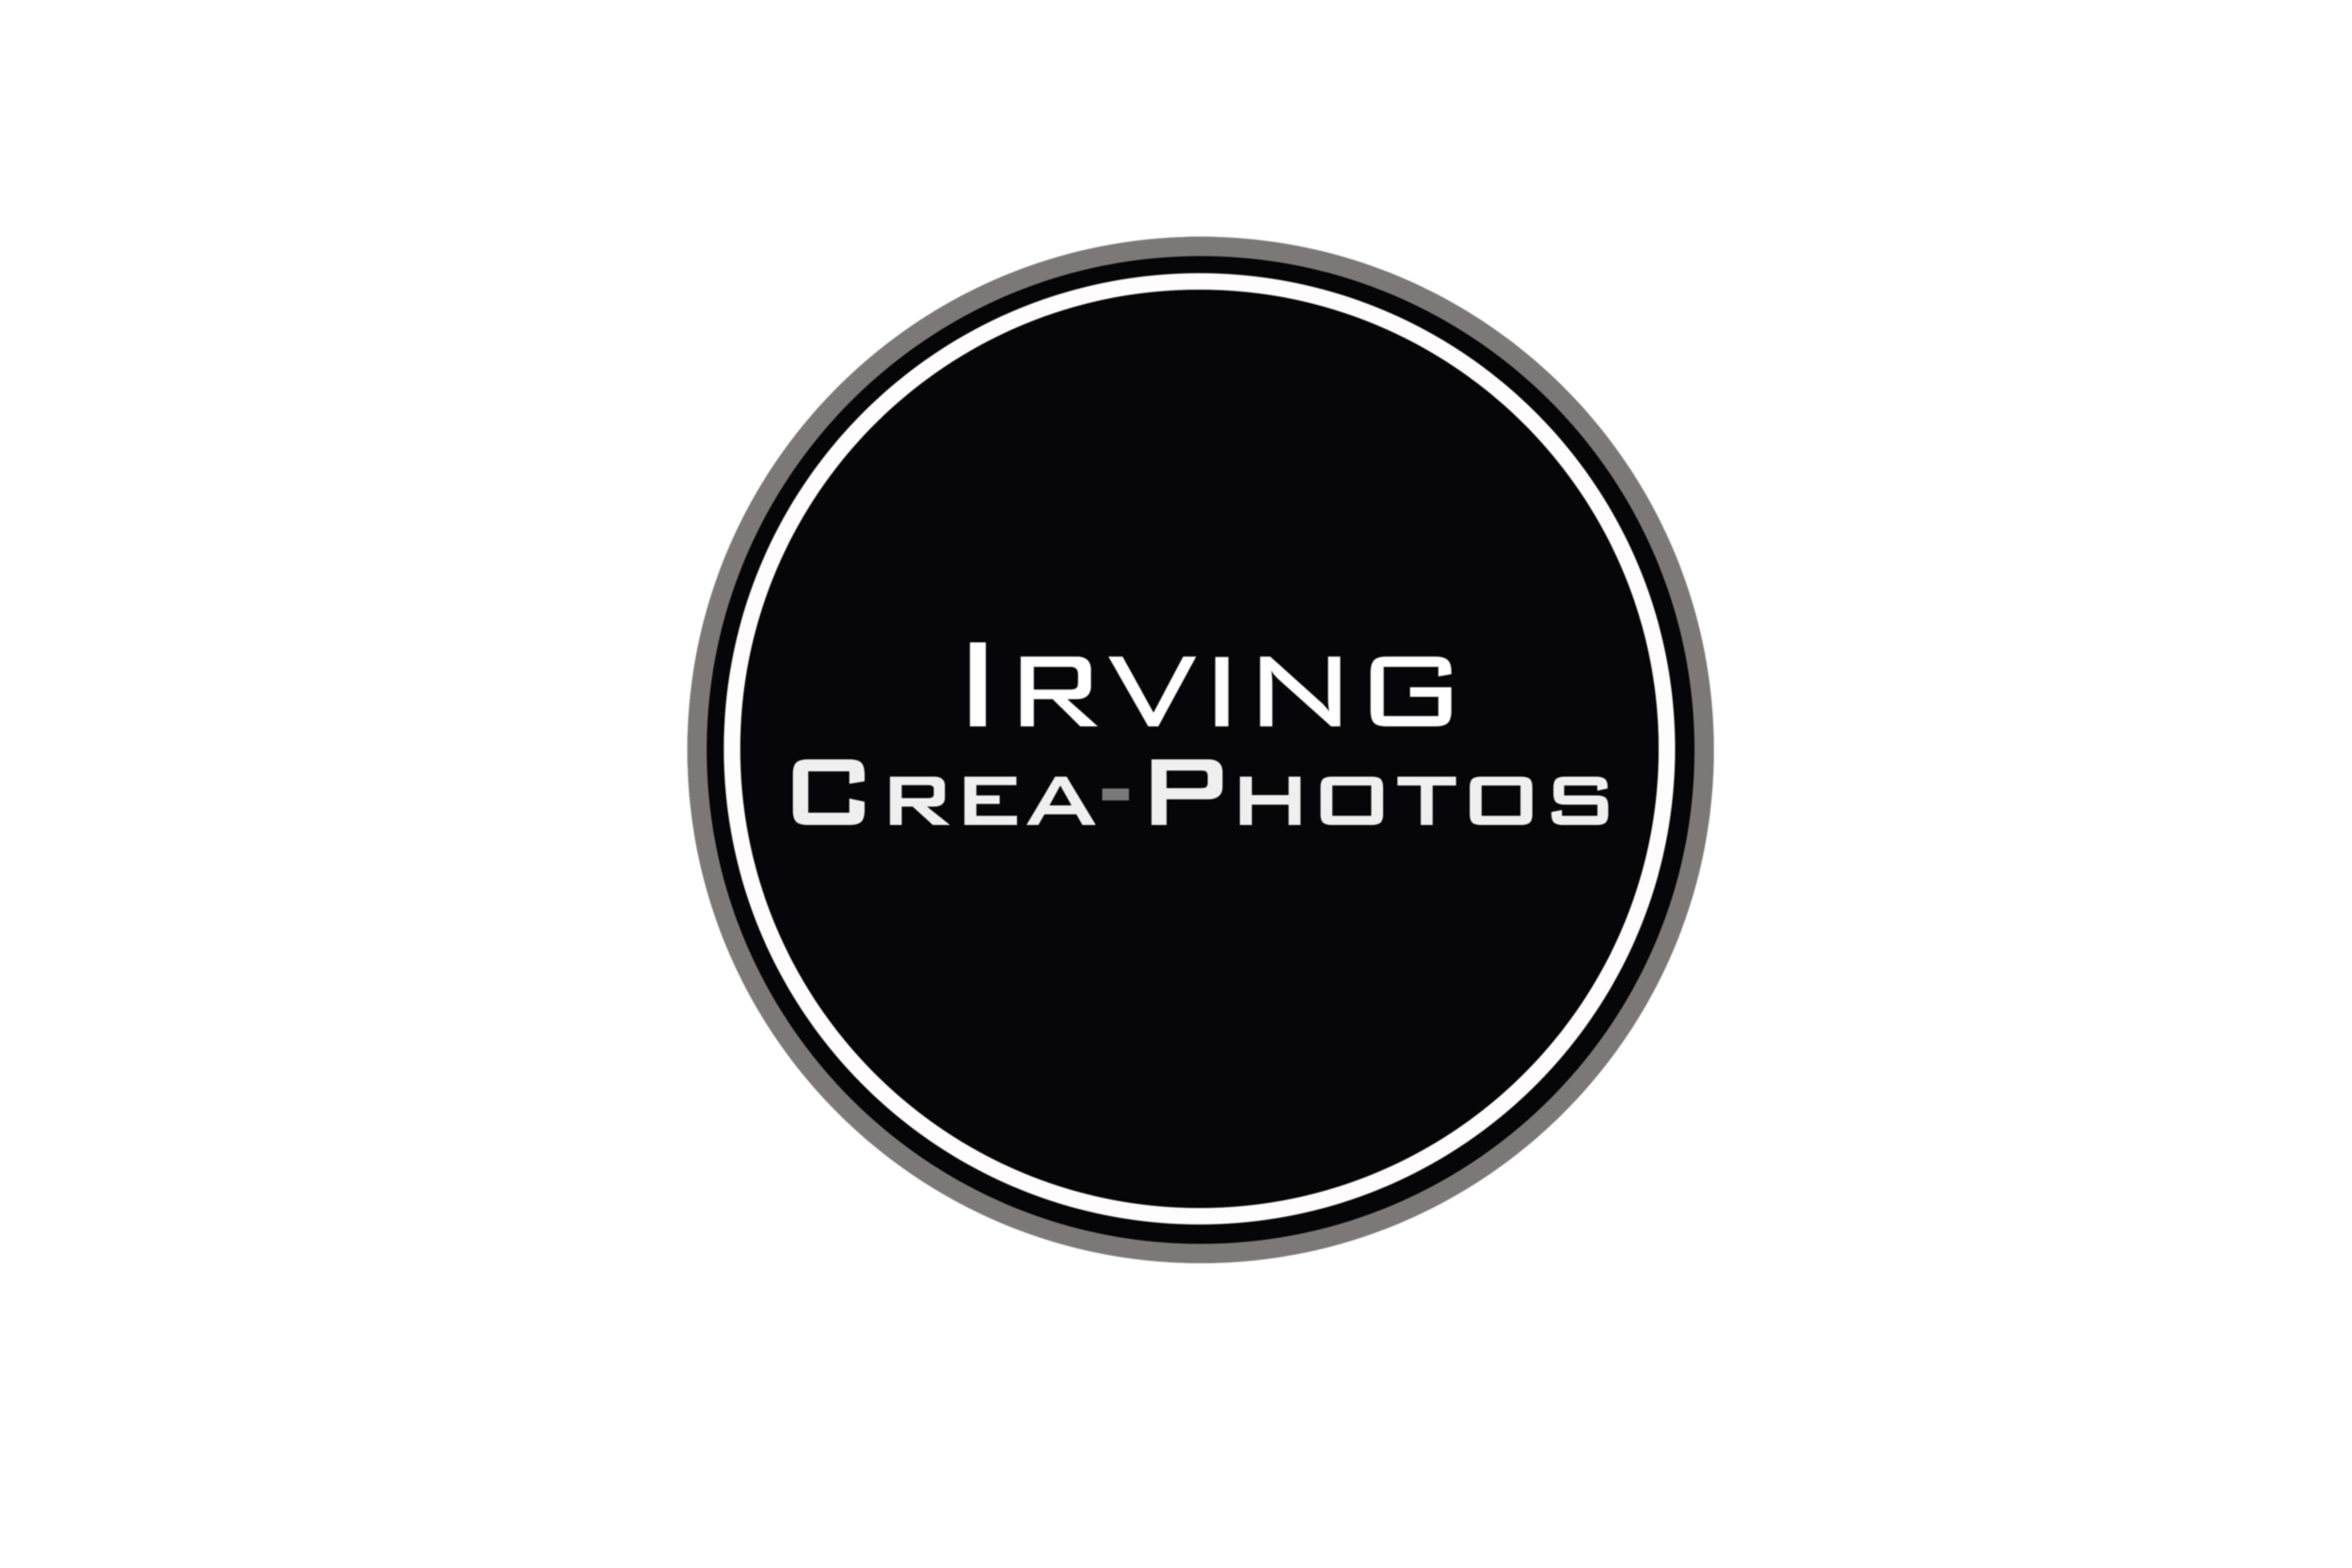 Irving Crea - Photos